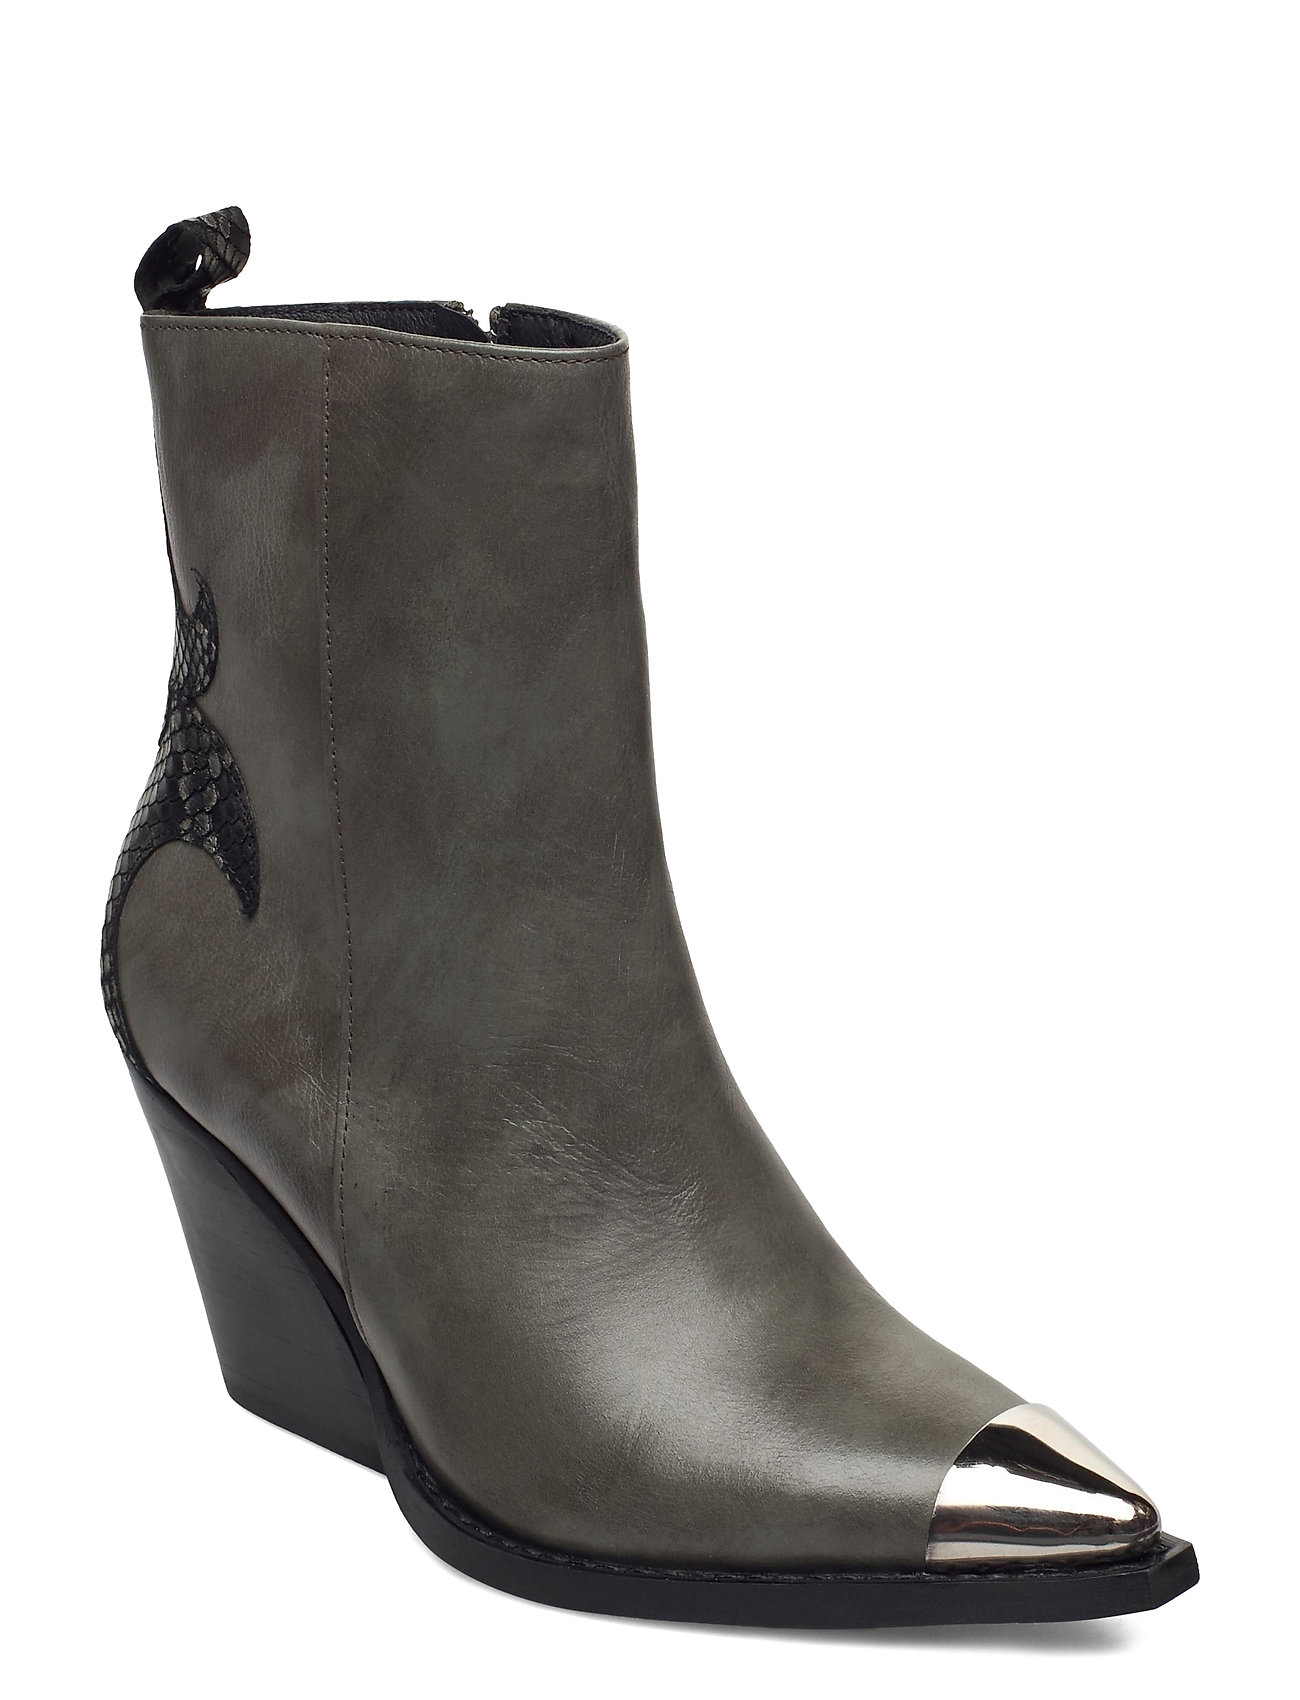 Image of Hasna Shoes Boots Ankle Boots Ankle Boot - Heel Grøn RE:DESIGNED EST 2003 (3463423765)